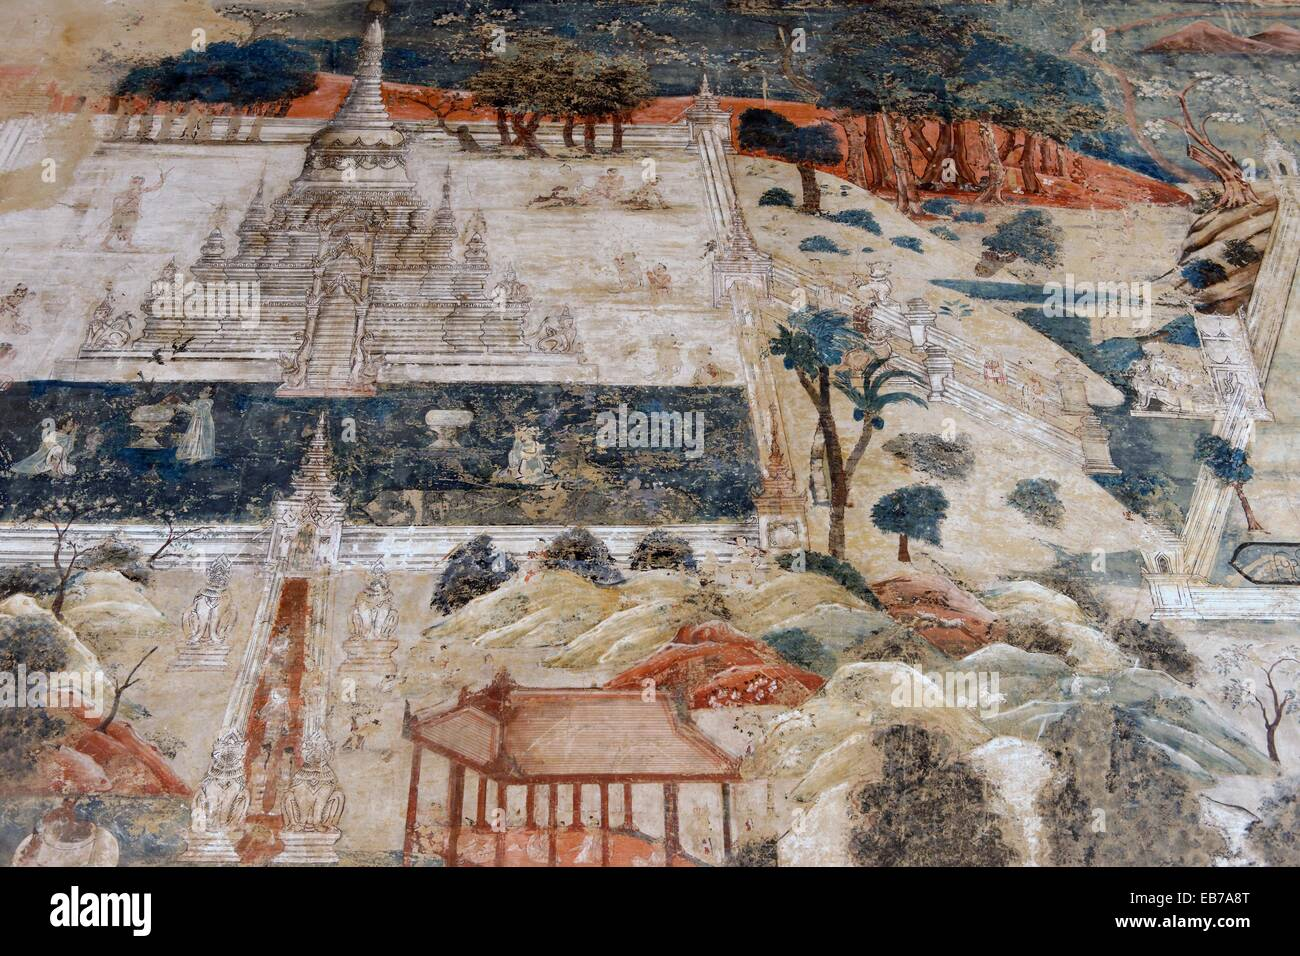 Frescoes depicting everyday scenes and illustrations of the zodiac  The Kyauktawgyi Pagoda was built by King Bagan - Stock Image